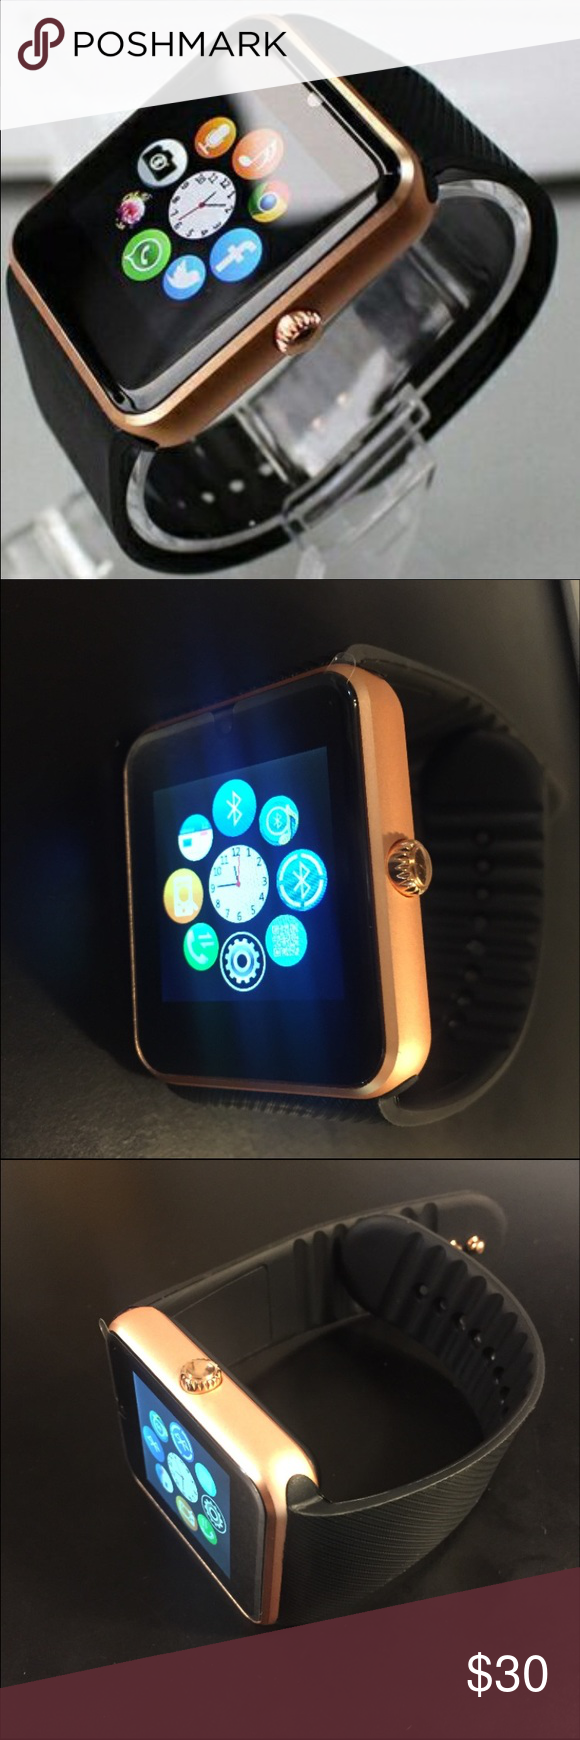 New Smart Watch RoseGold New Smart Watch CompatibleAll